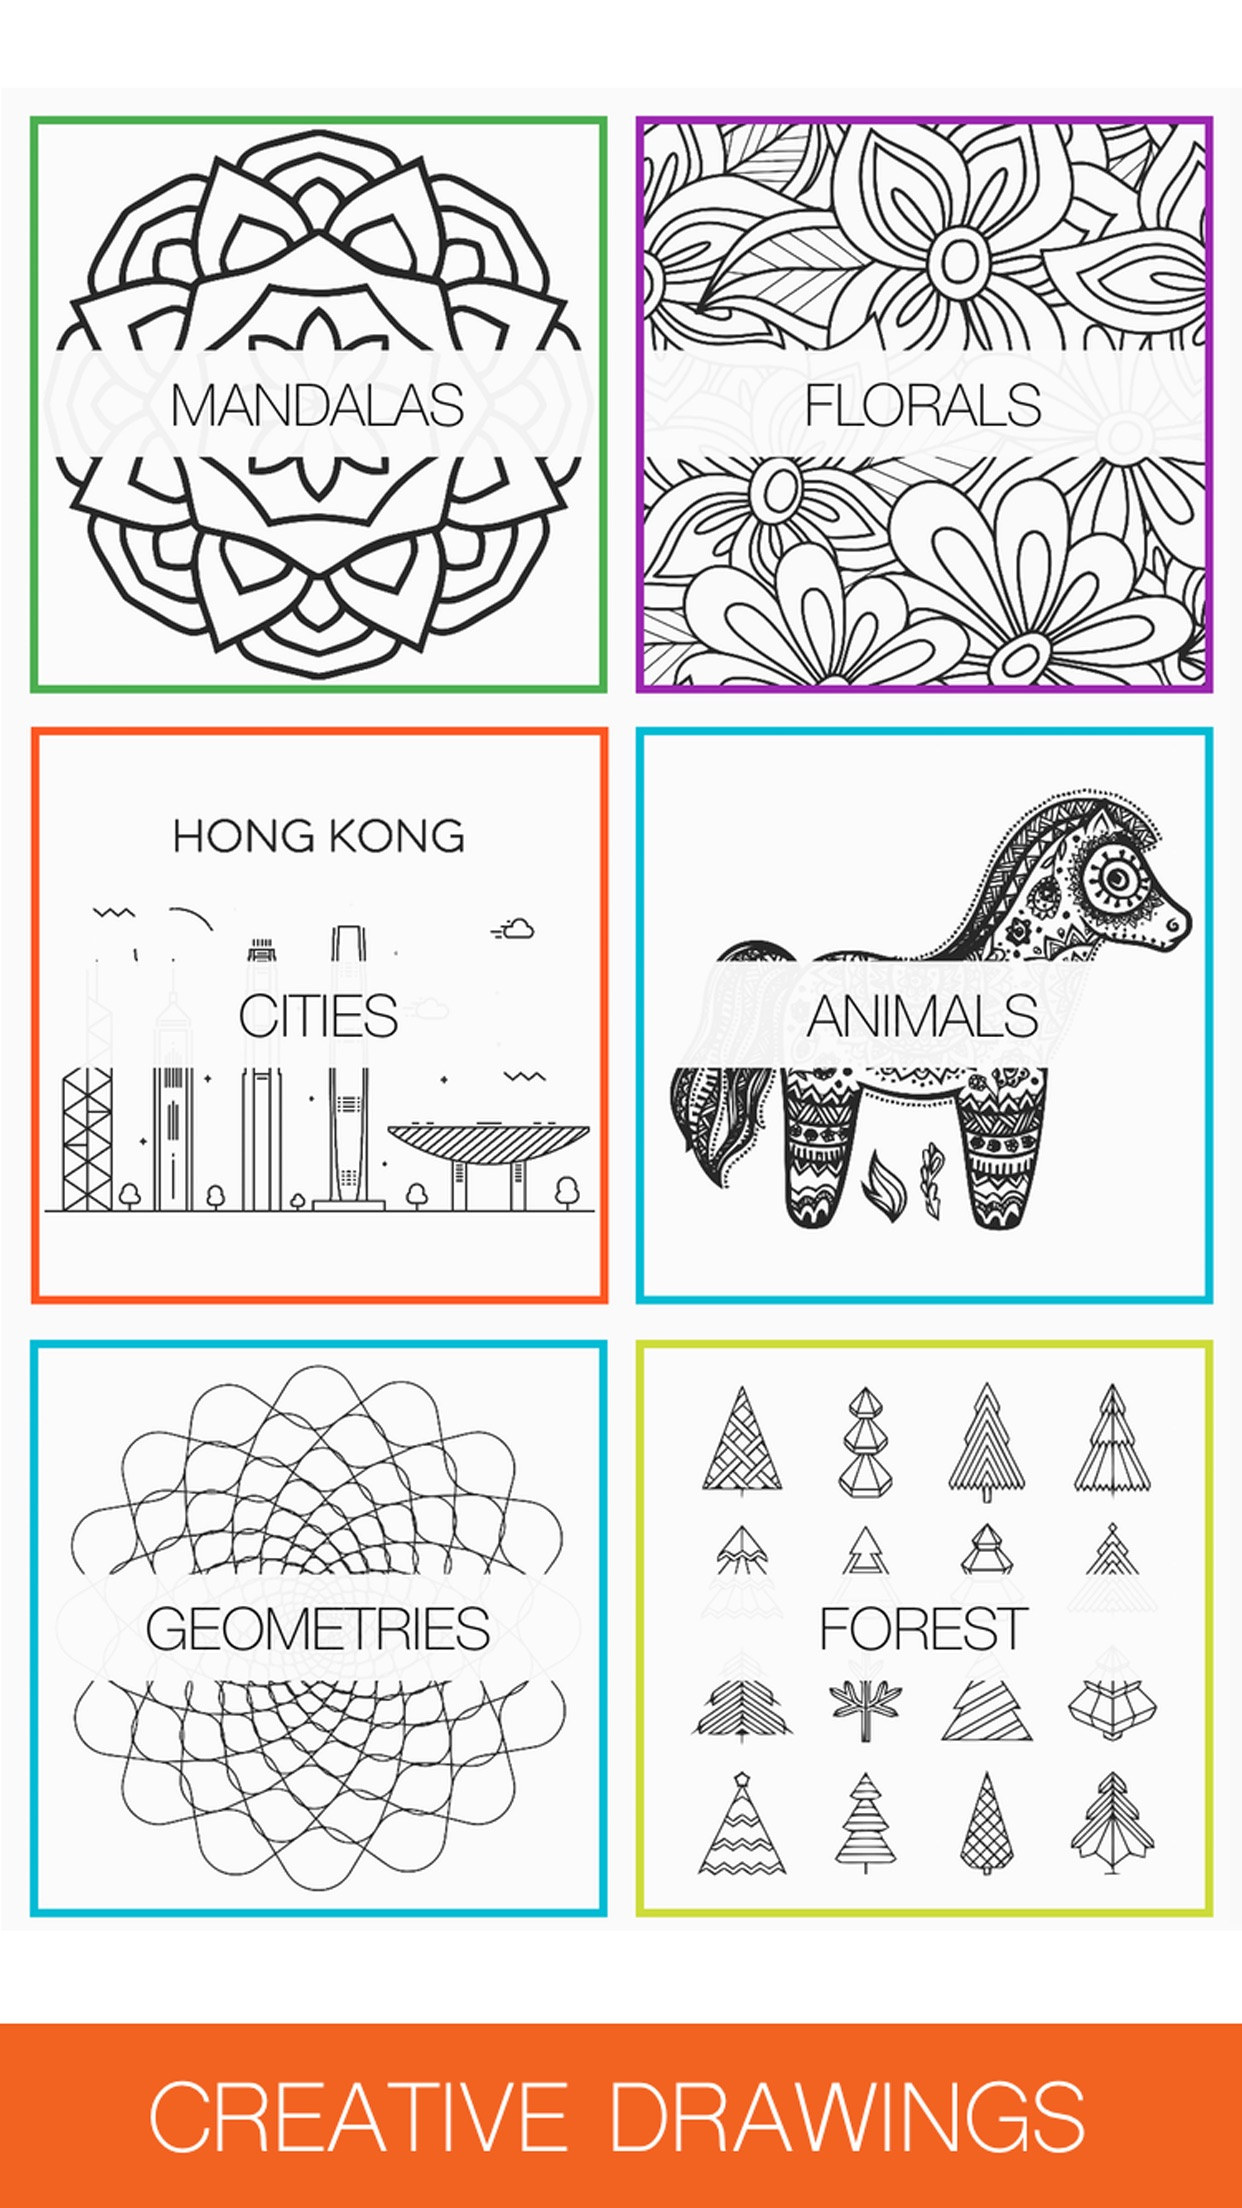 Colorme: Coloring Book for Adults Screenshot